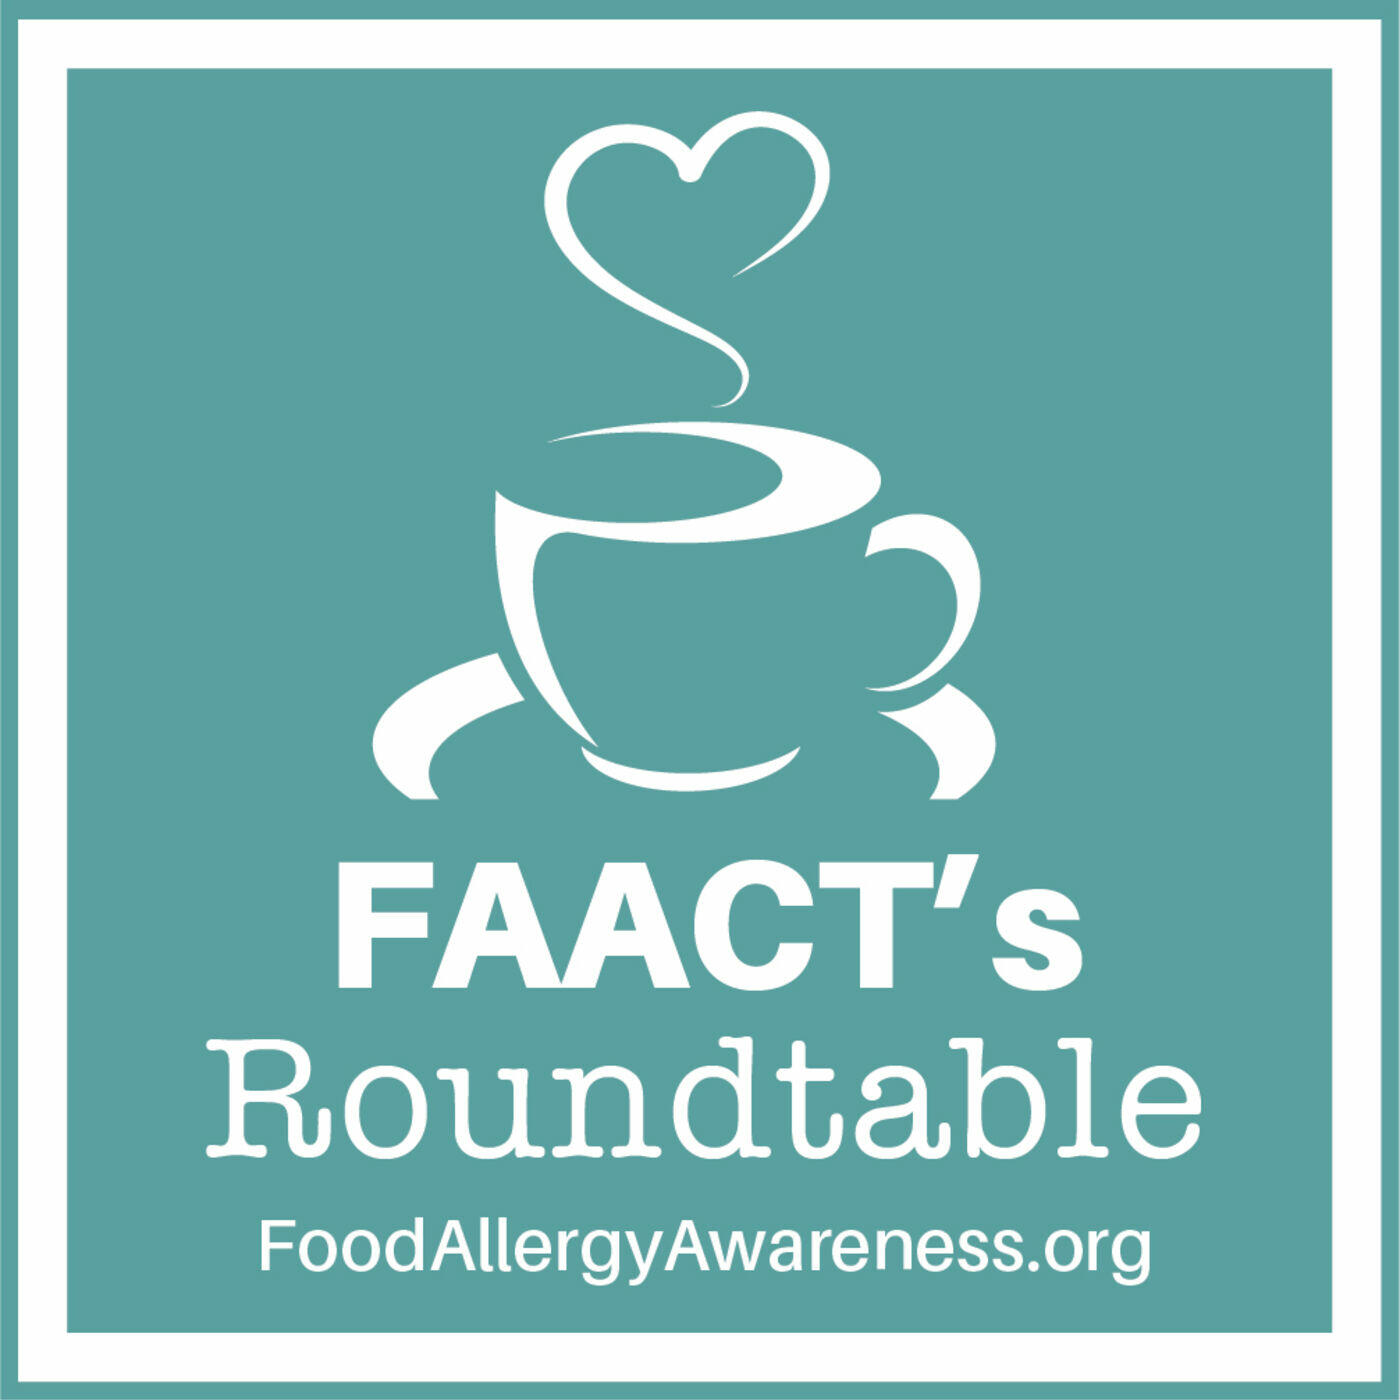 FAACT's Roundtable